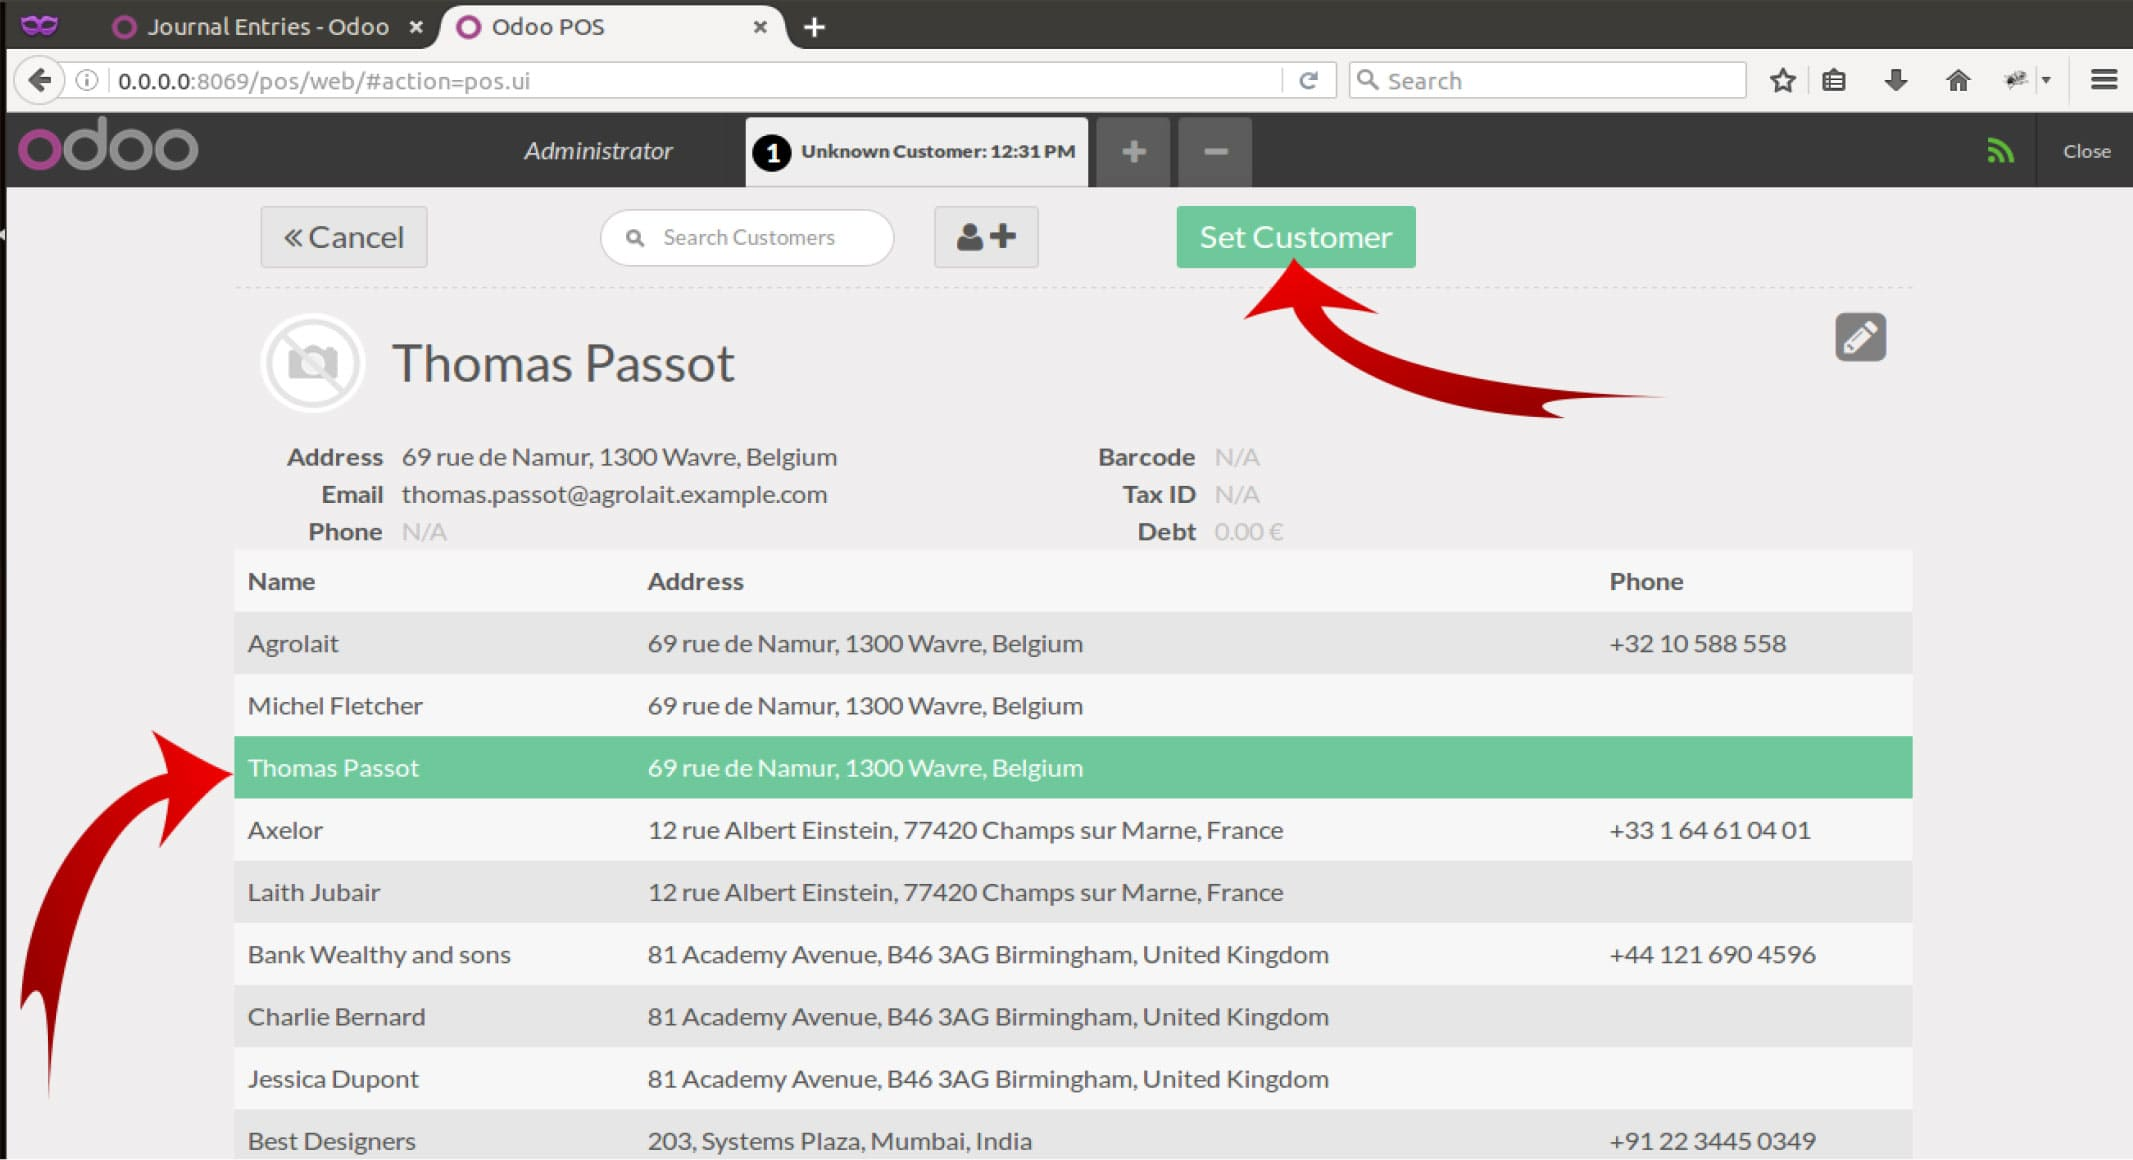 https/blog/Uploads/BlogImage/debt-notebook-10.jpg